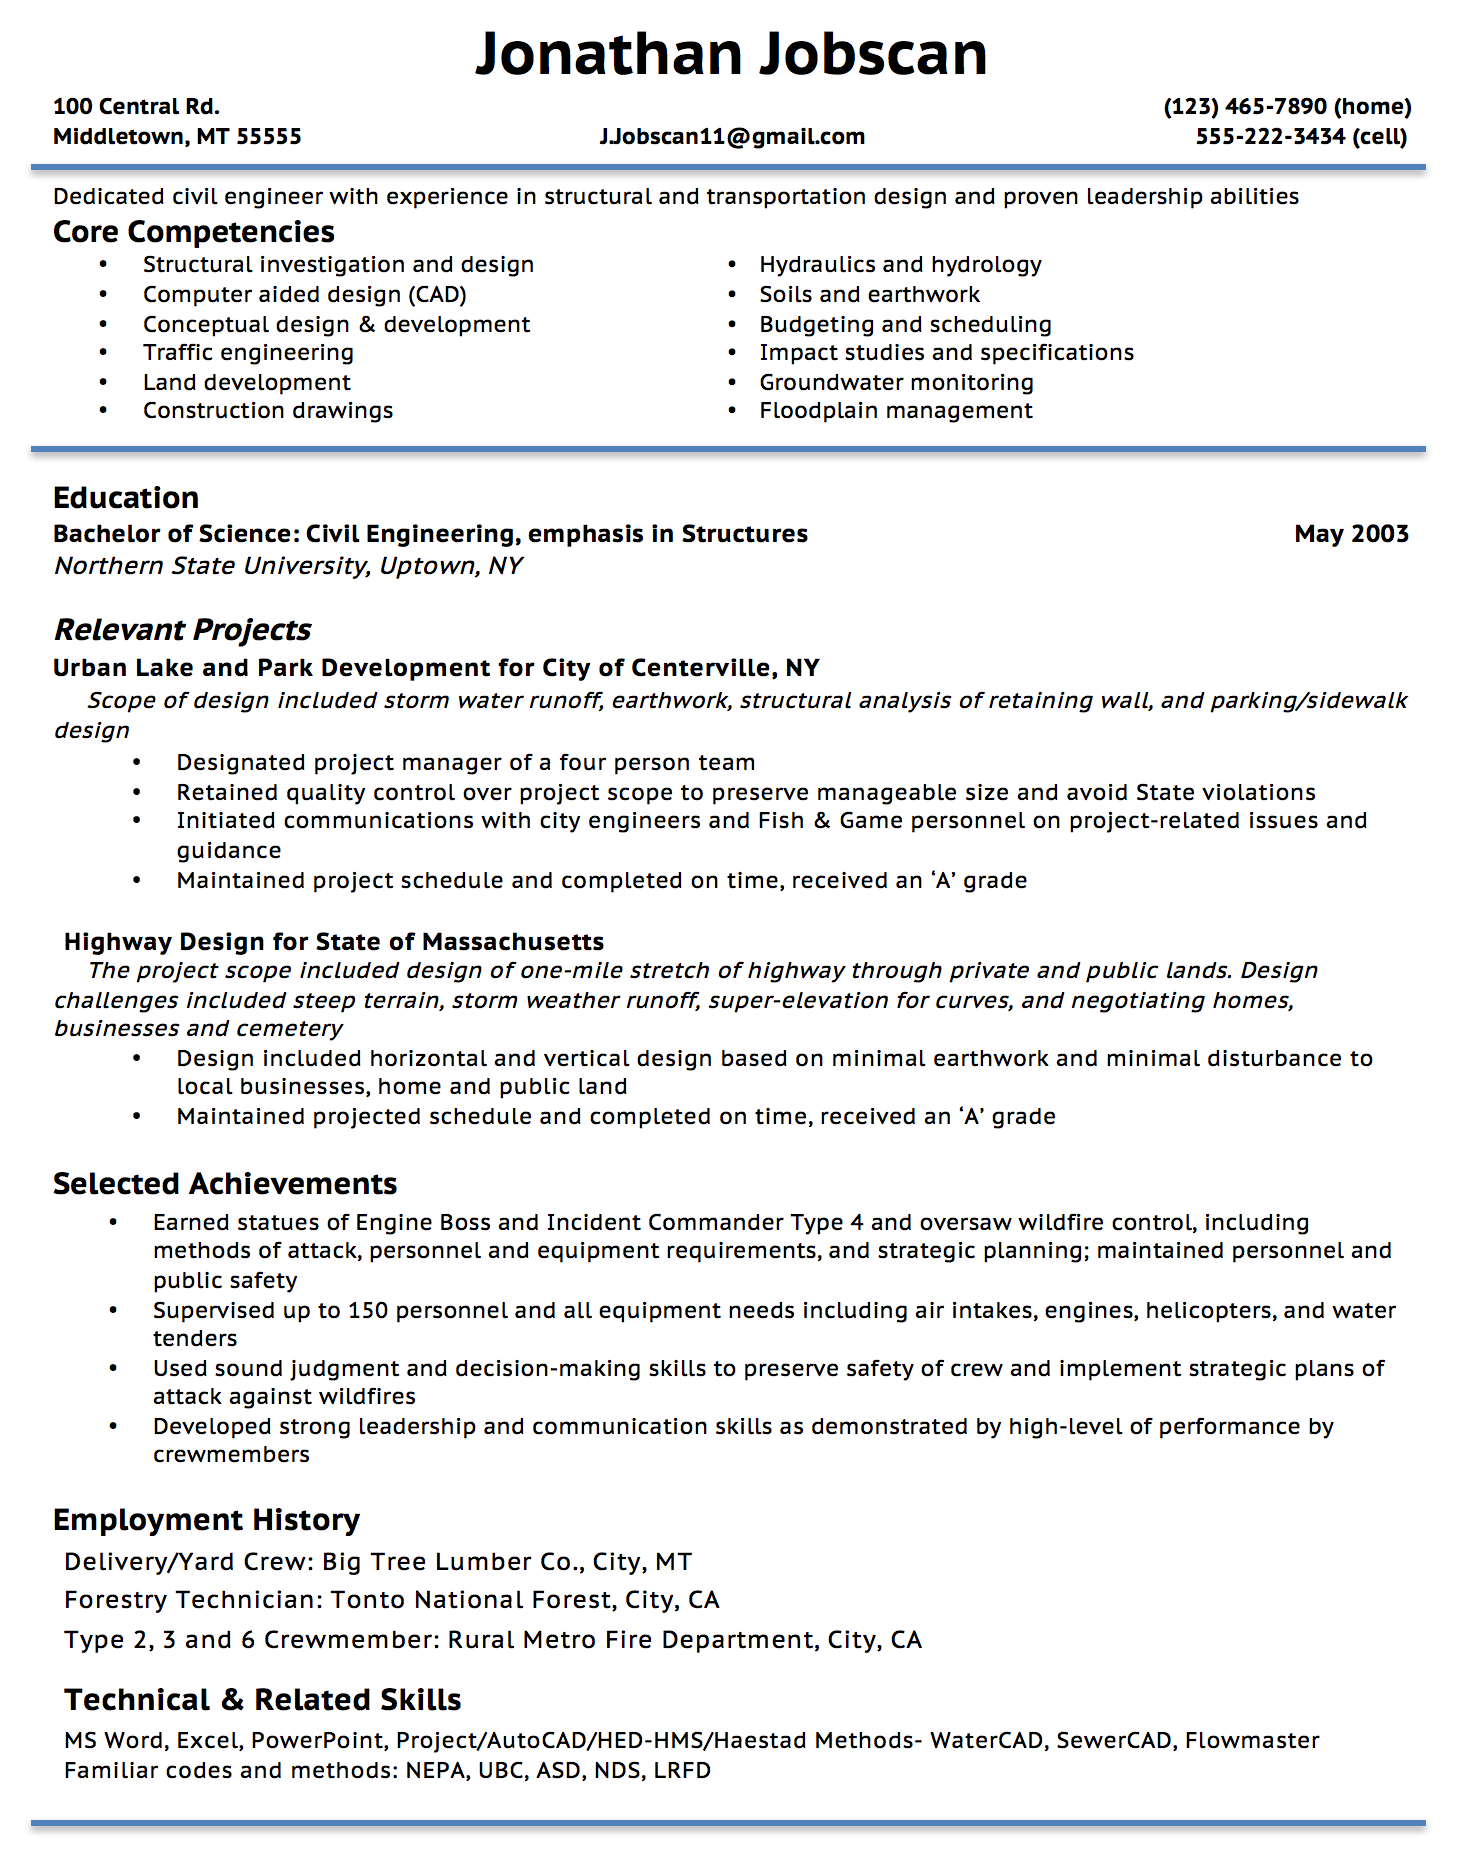 Picnictoimpeachus  Picturesque Resume Writing Guide  Jobscan With Interesting Example Of A Functional Resume Format With Cool Basic Resume Format Also Free Resume Templates Download In Addition Keywords For Resumes And Real Estate Resume As Well As Career Builder Resume Additionally Accounts Payable Resume From Jobscanco With Picnictoimpeachus  Interesting Resume Writing Guide  Jobscan With Cool Example Of A Functional Resume Format And Picturesque Basic Resume Format Also Free Resume Templates Download In Addition Keywords For Resumes From Jobscanco